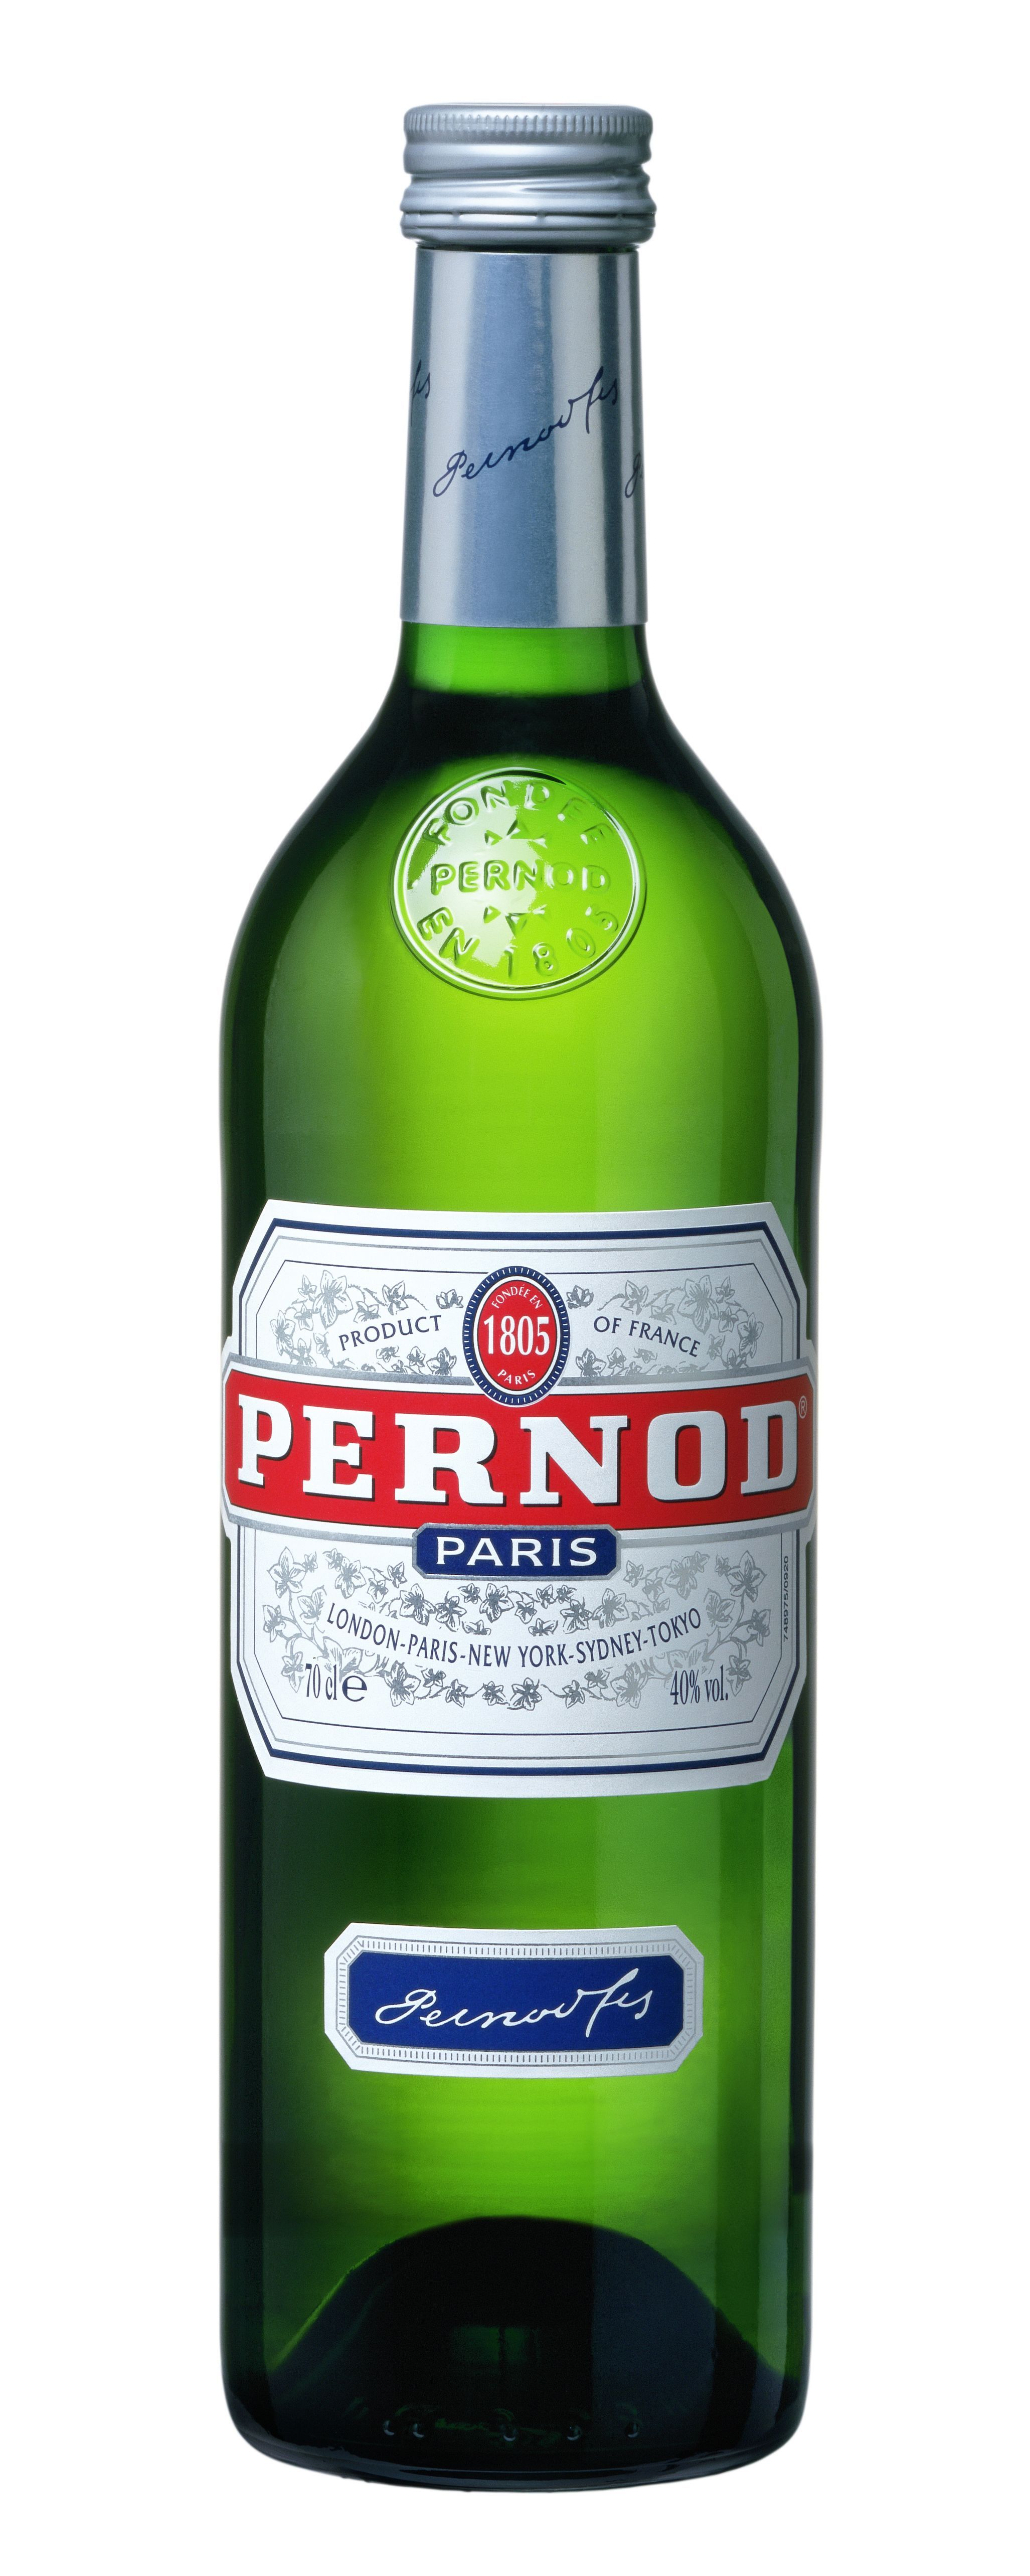 Pernod from France